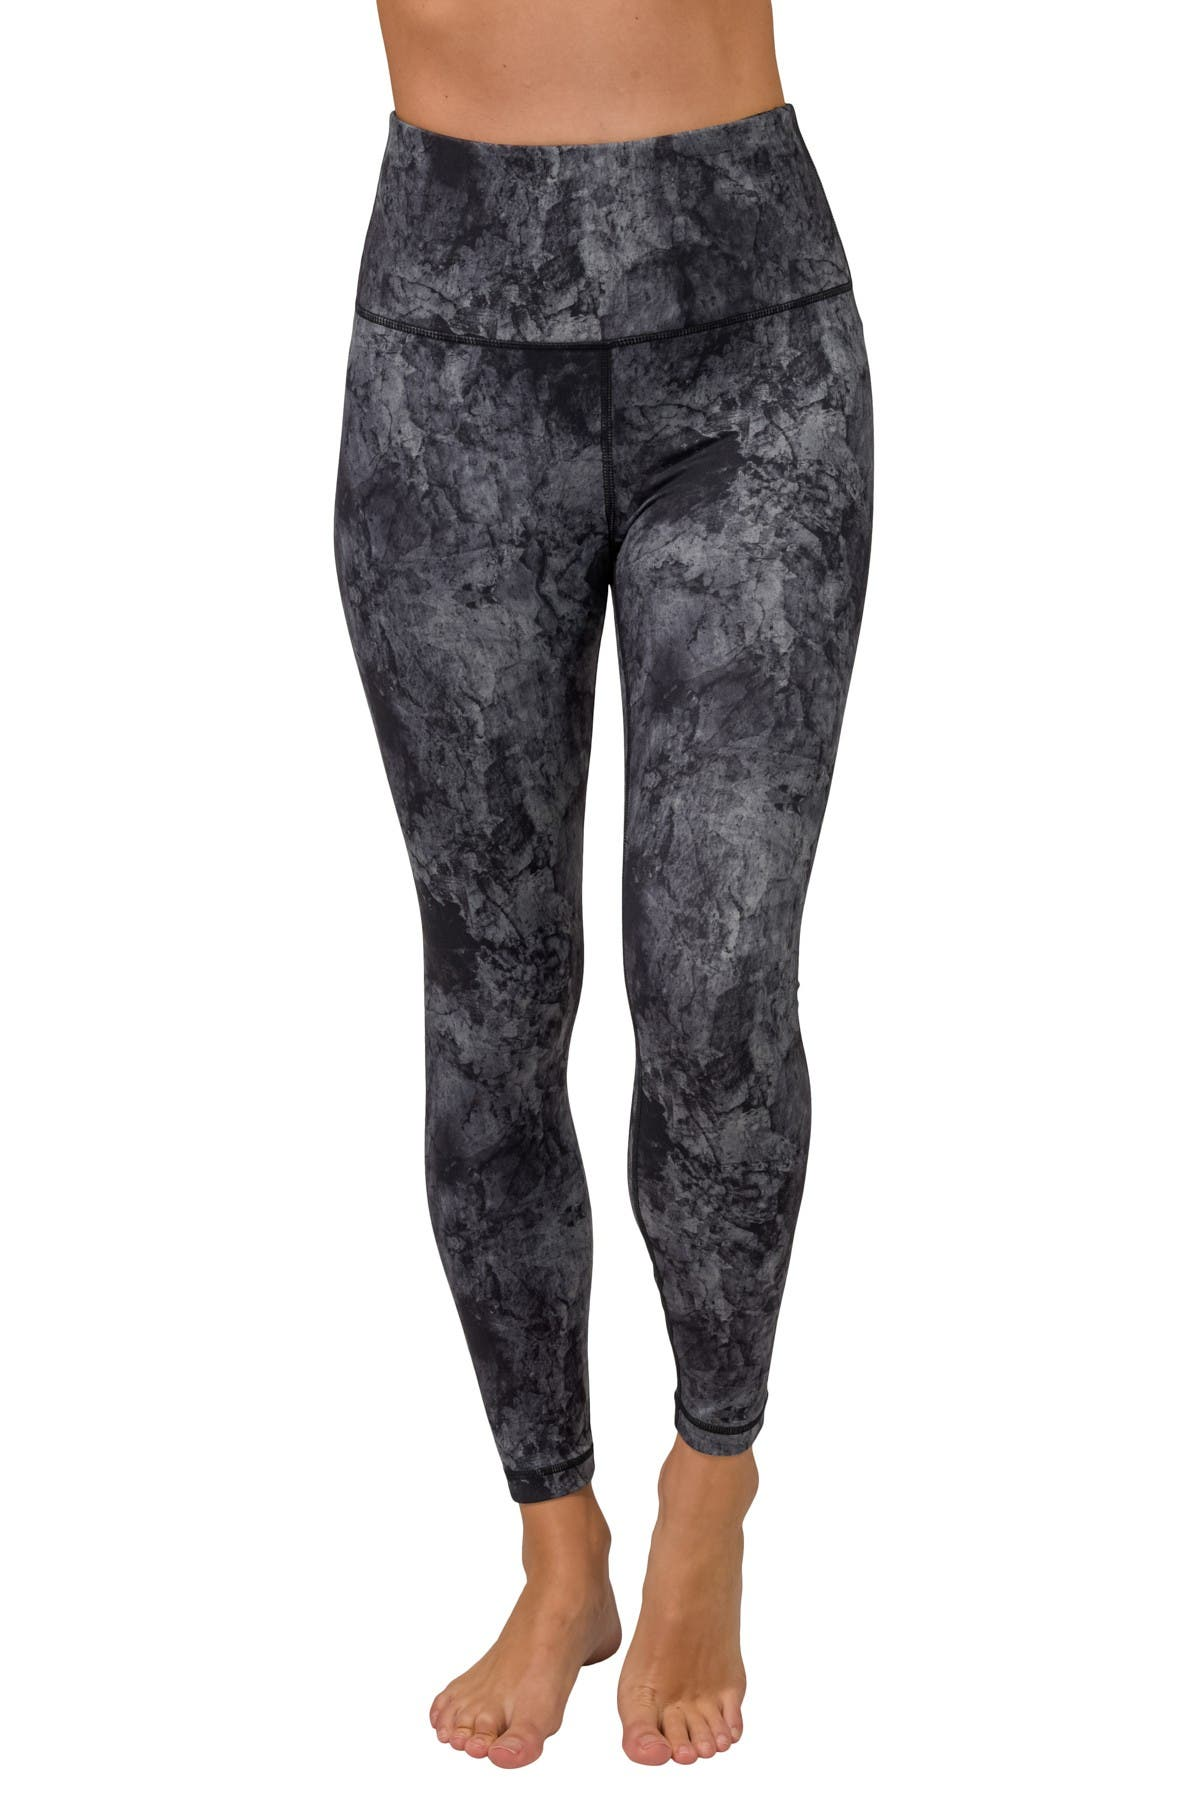 Image of 90 Degree By Reflex Marble Print High Waist Ankle Leggings